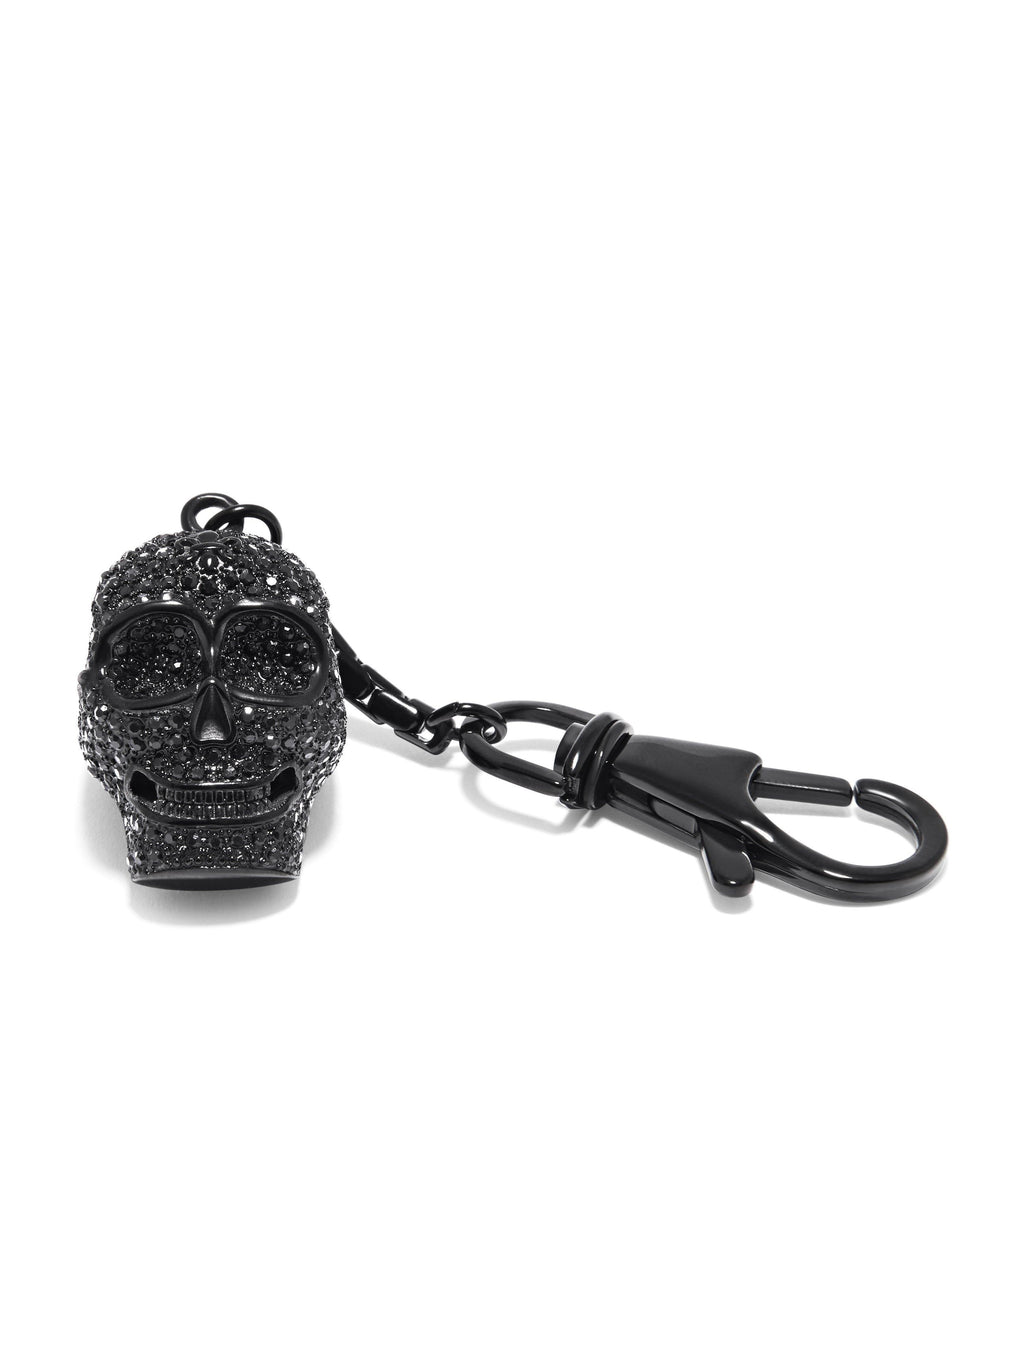 Black Skull Key Chain